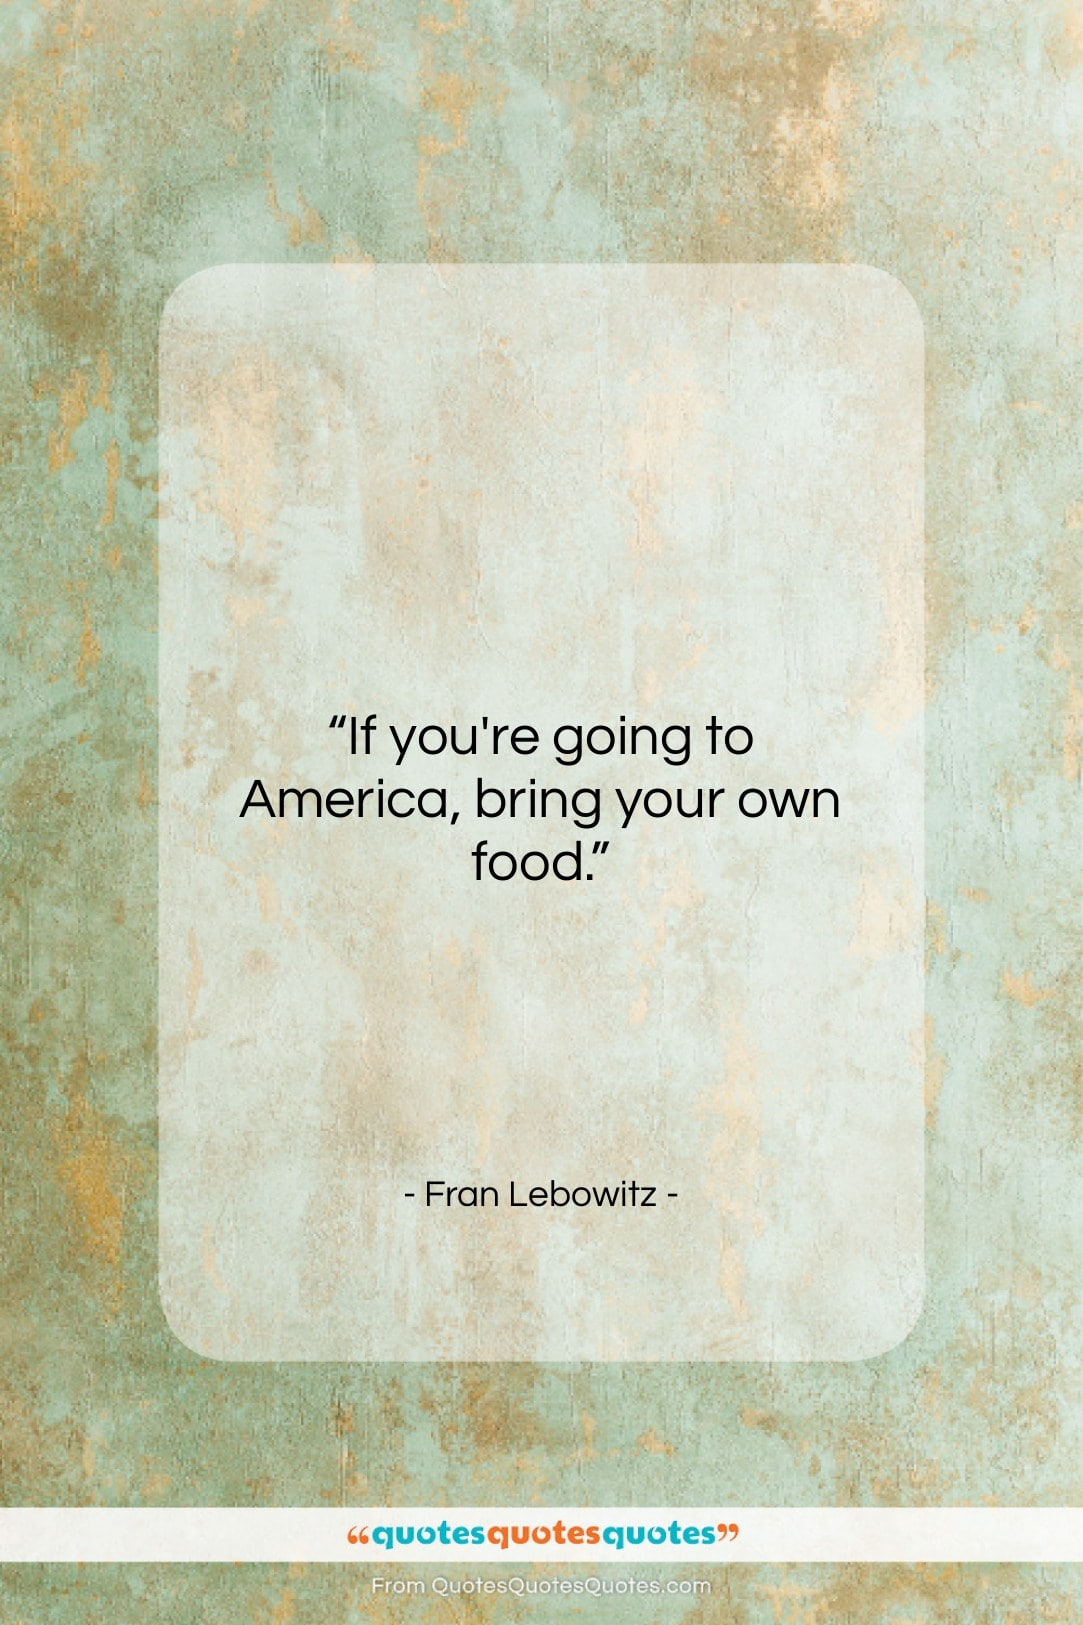 """Fran Lebowitz quote: """"If you're going to America, bring your…""""- at QuotesQuotesQuotes.com"""